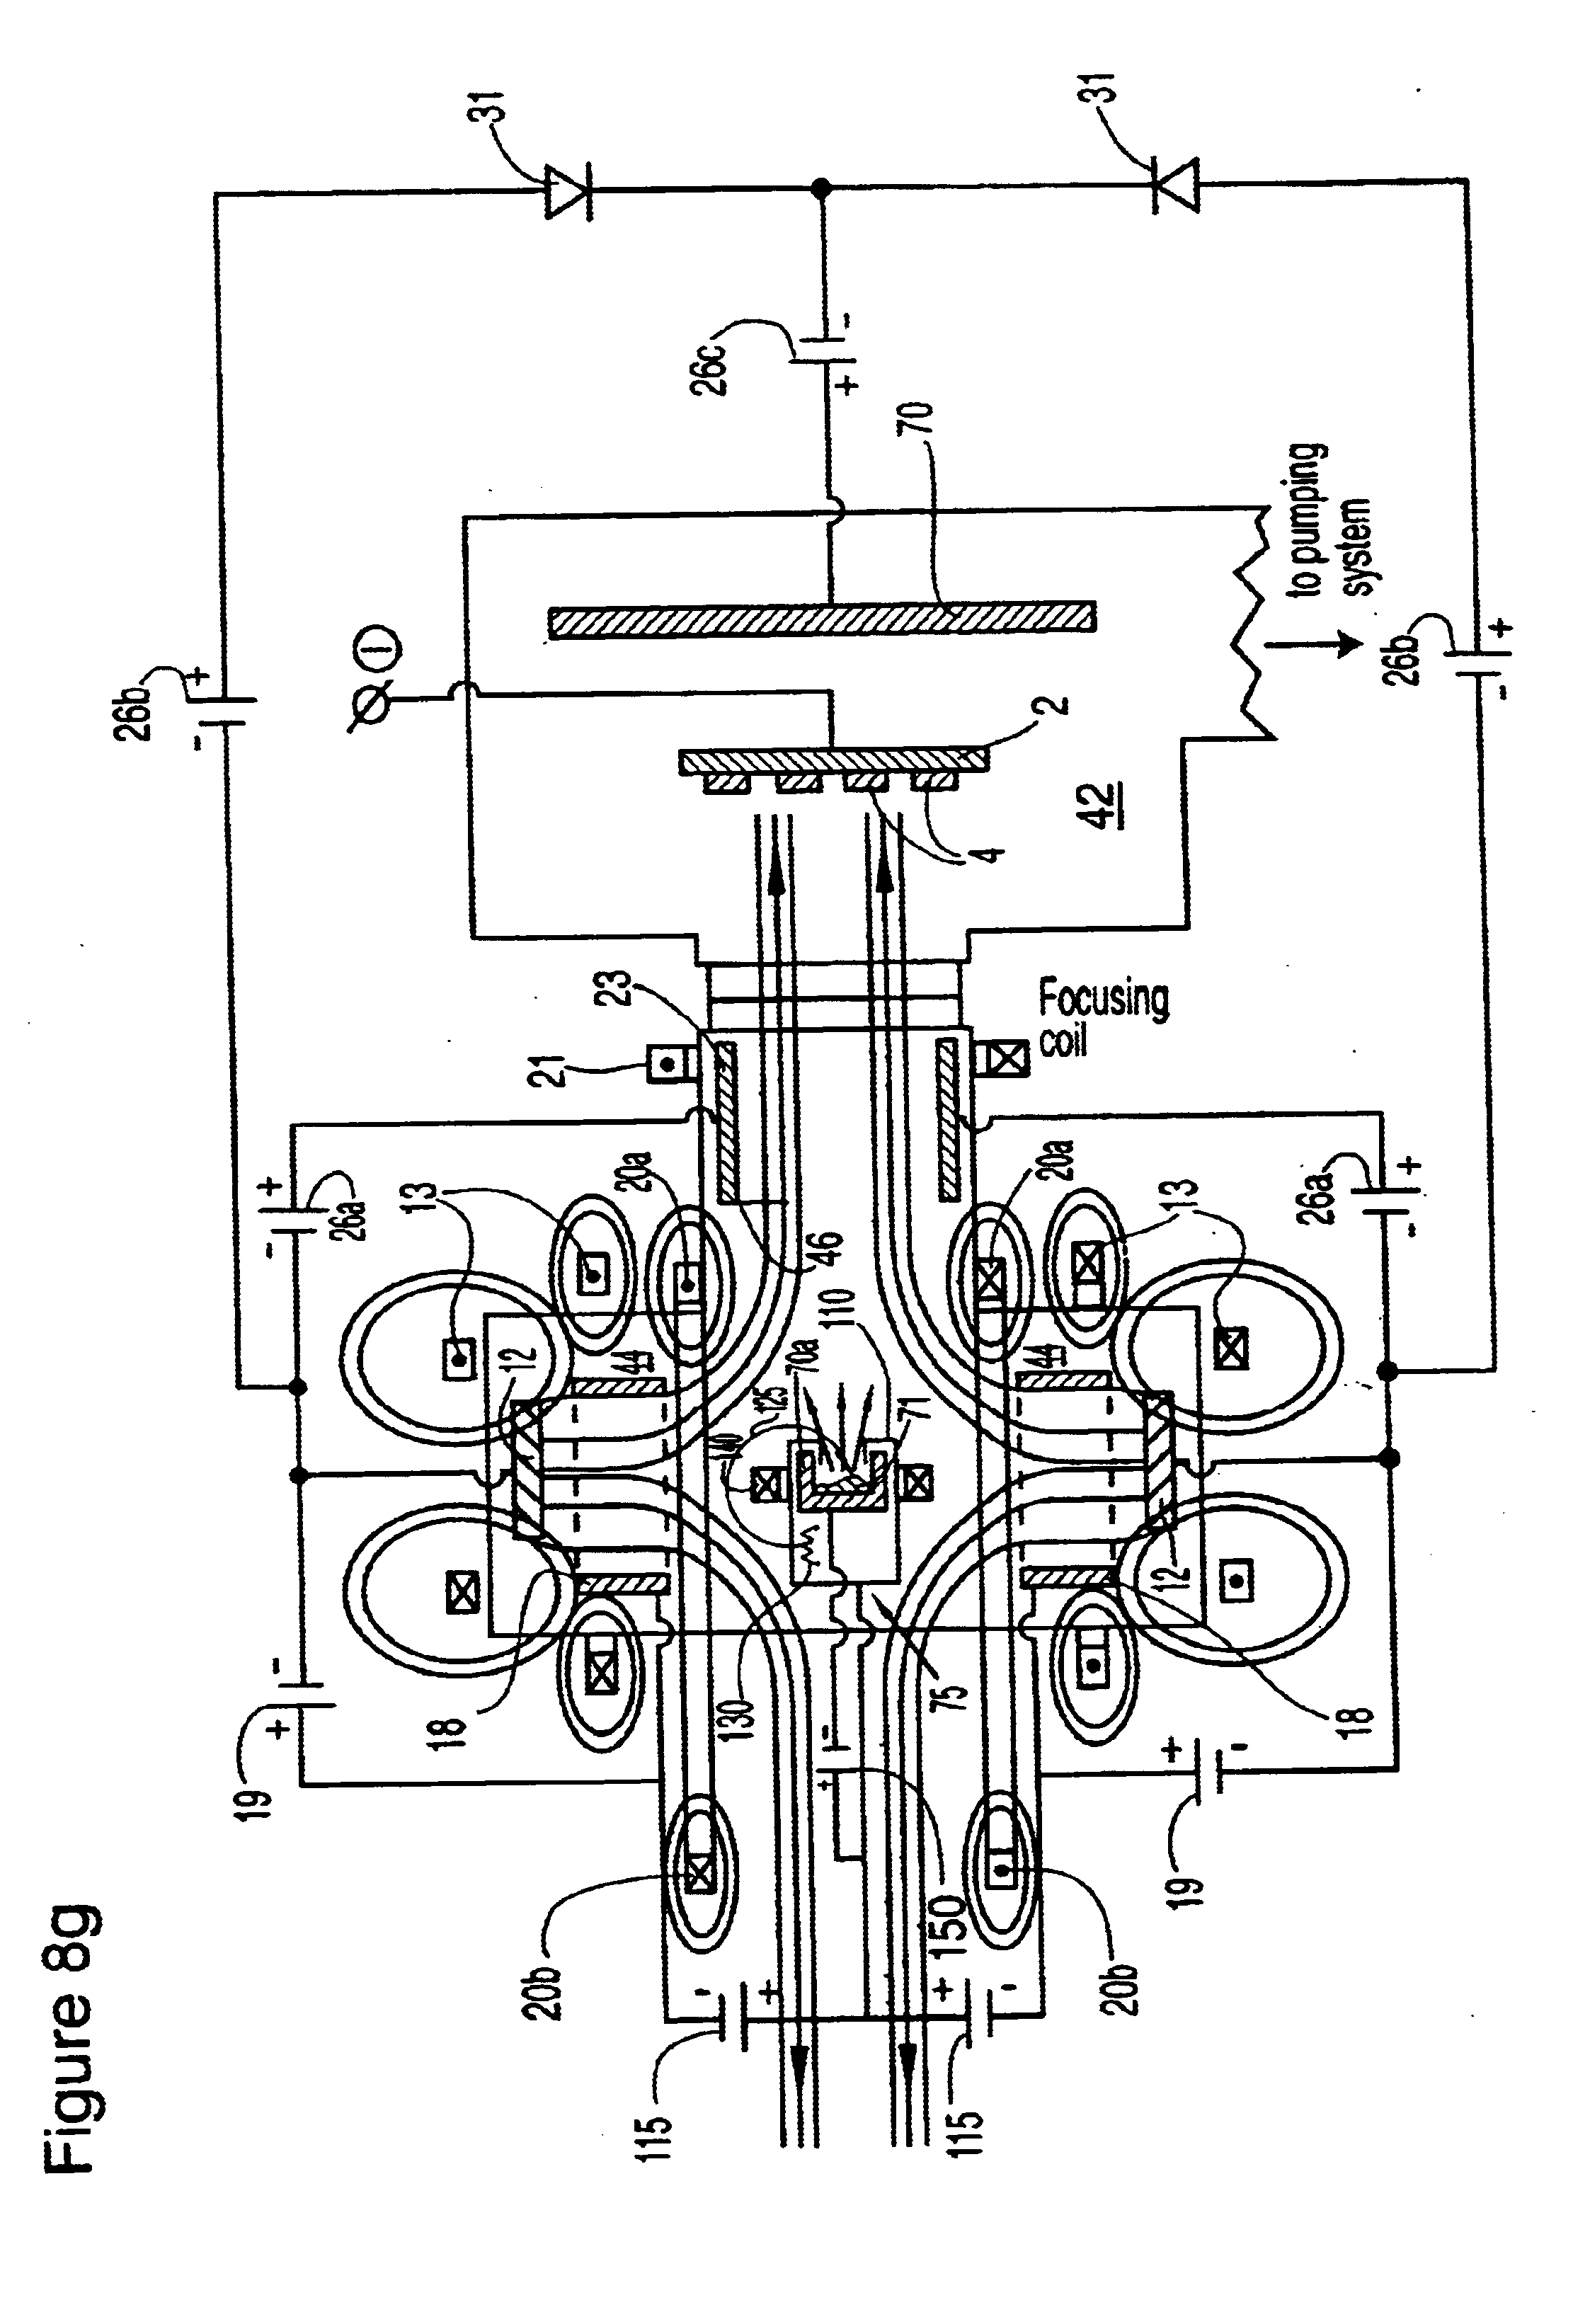 Voyager Ke Controller Wiring Diagram 1998 Plymouth Engine Ford Fine Electric Elaboration Electrical